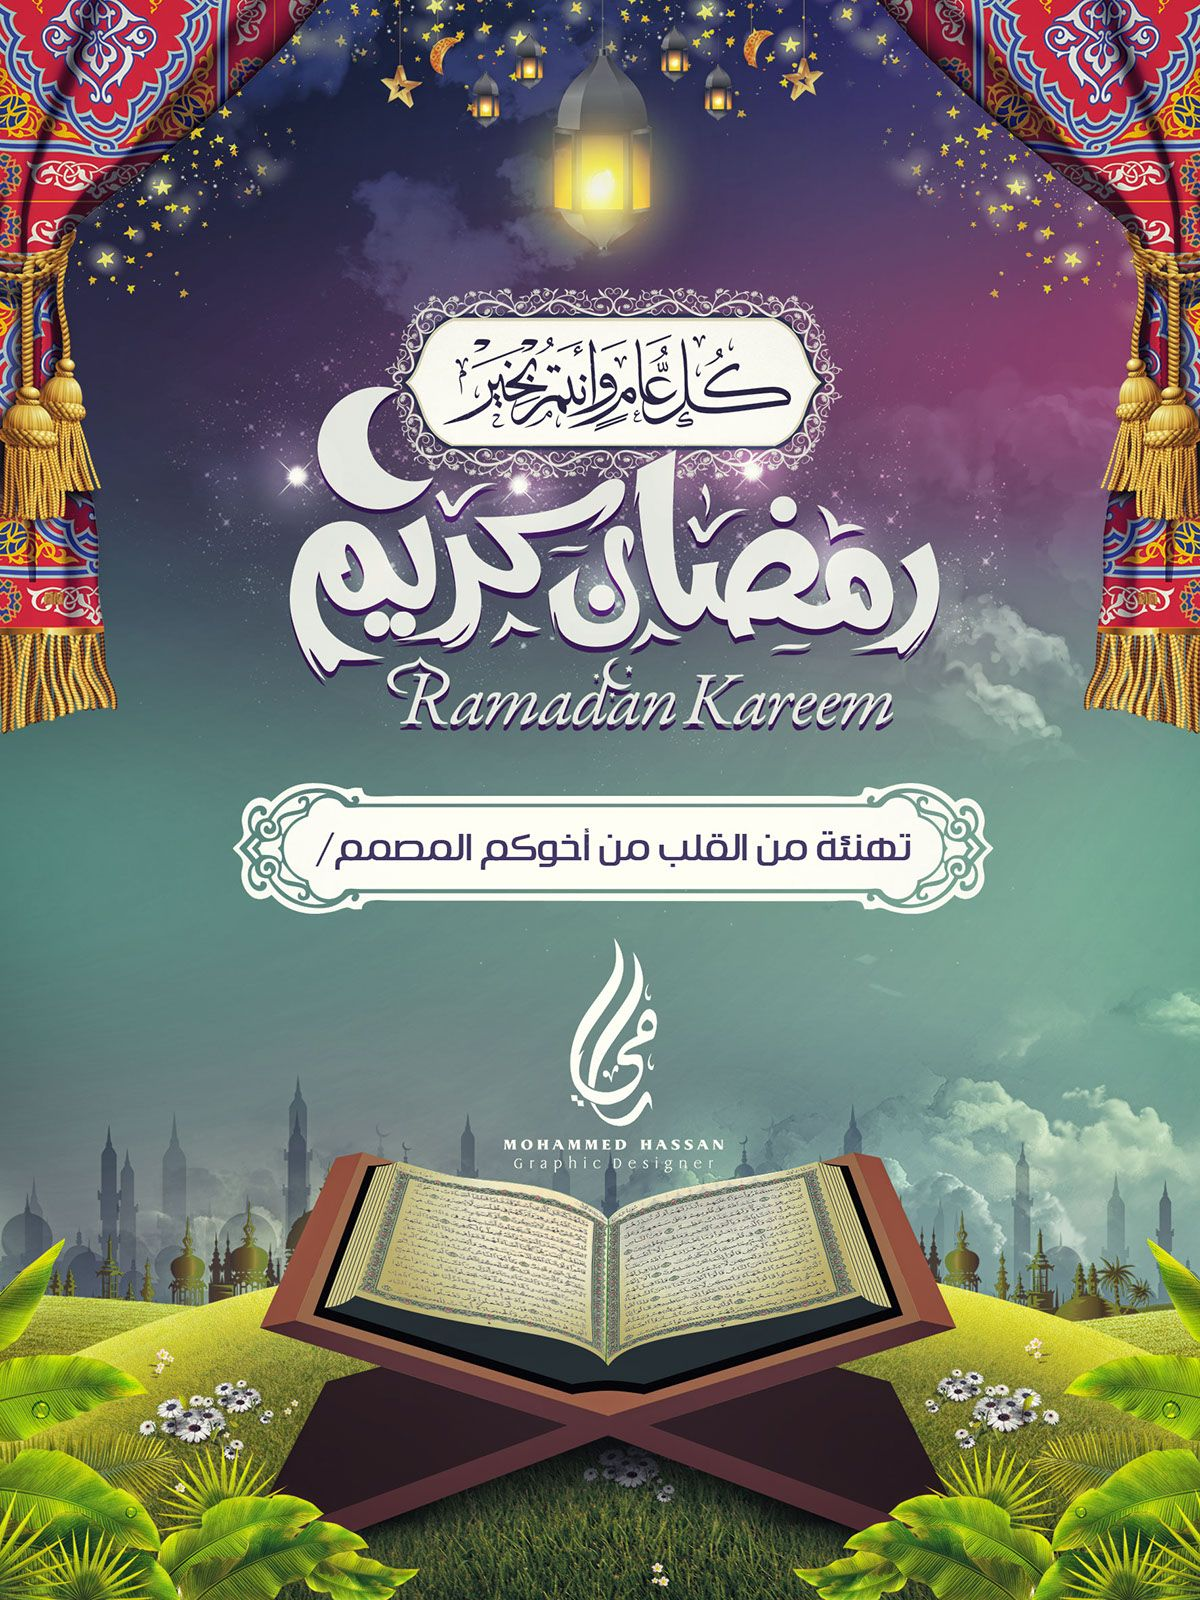 Free Psd Flyer Ramadan 1437 تصميم مجاني فلاير رمضان On Behance Free Psd Flyer Flyer And Poster Design Free Psd